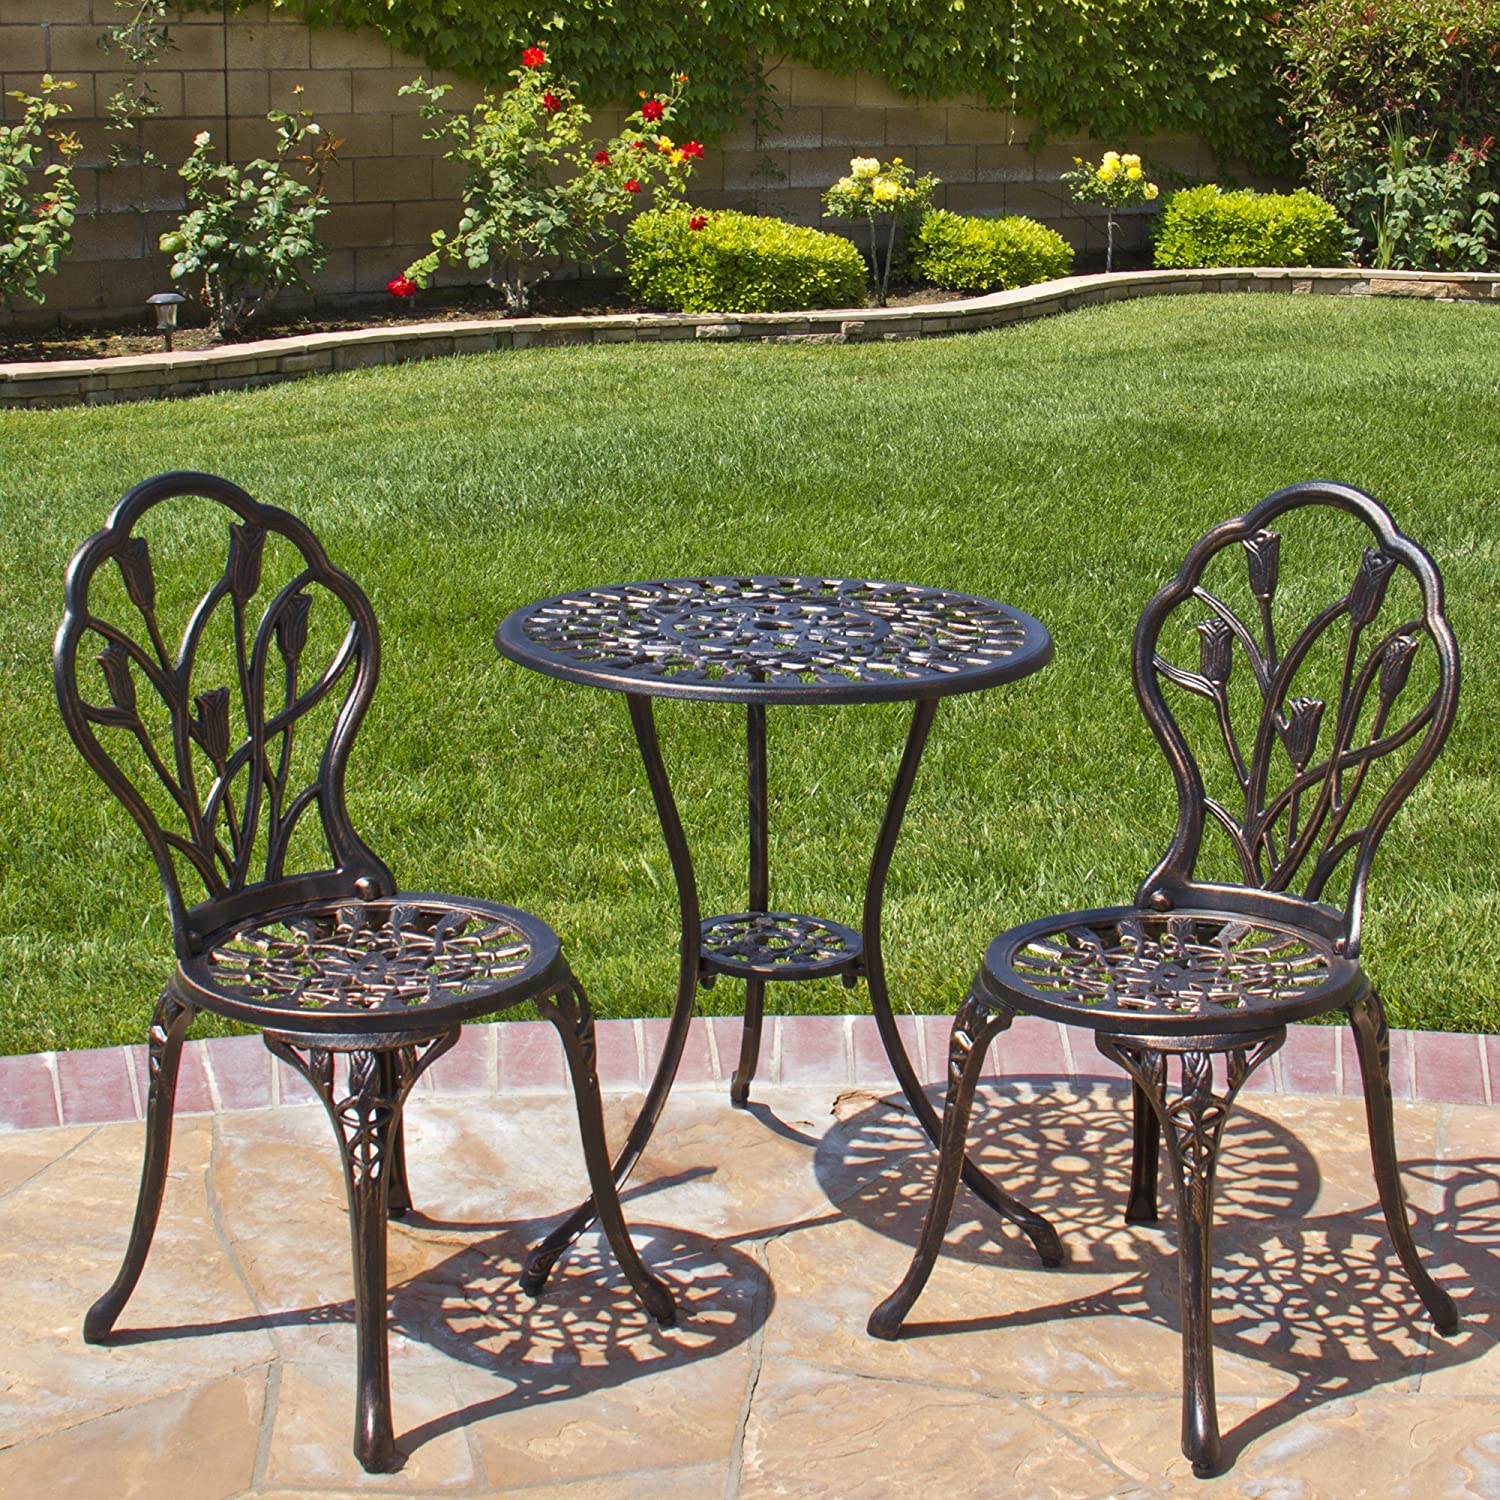 amazoncom best choice products outdoor patio furniture tulip design cast aluminum 3 piece bistro set in antique copper garden outdoor - Garden Furniture Table And Chairs